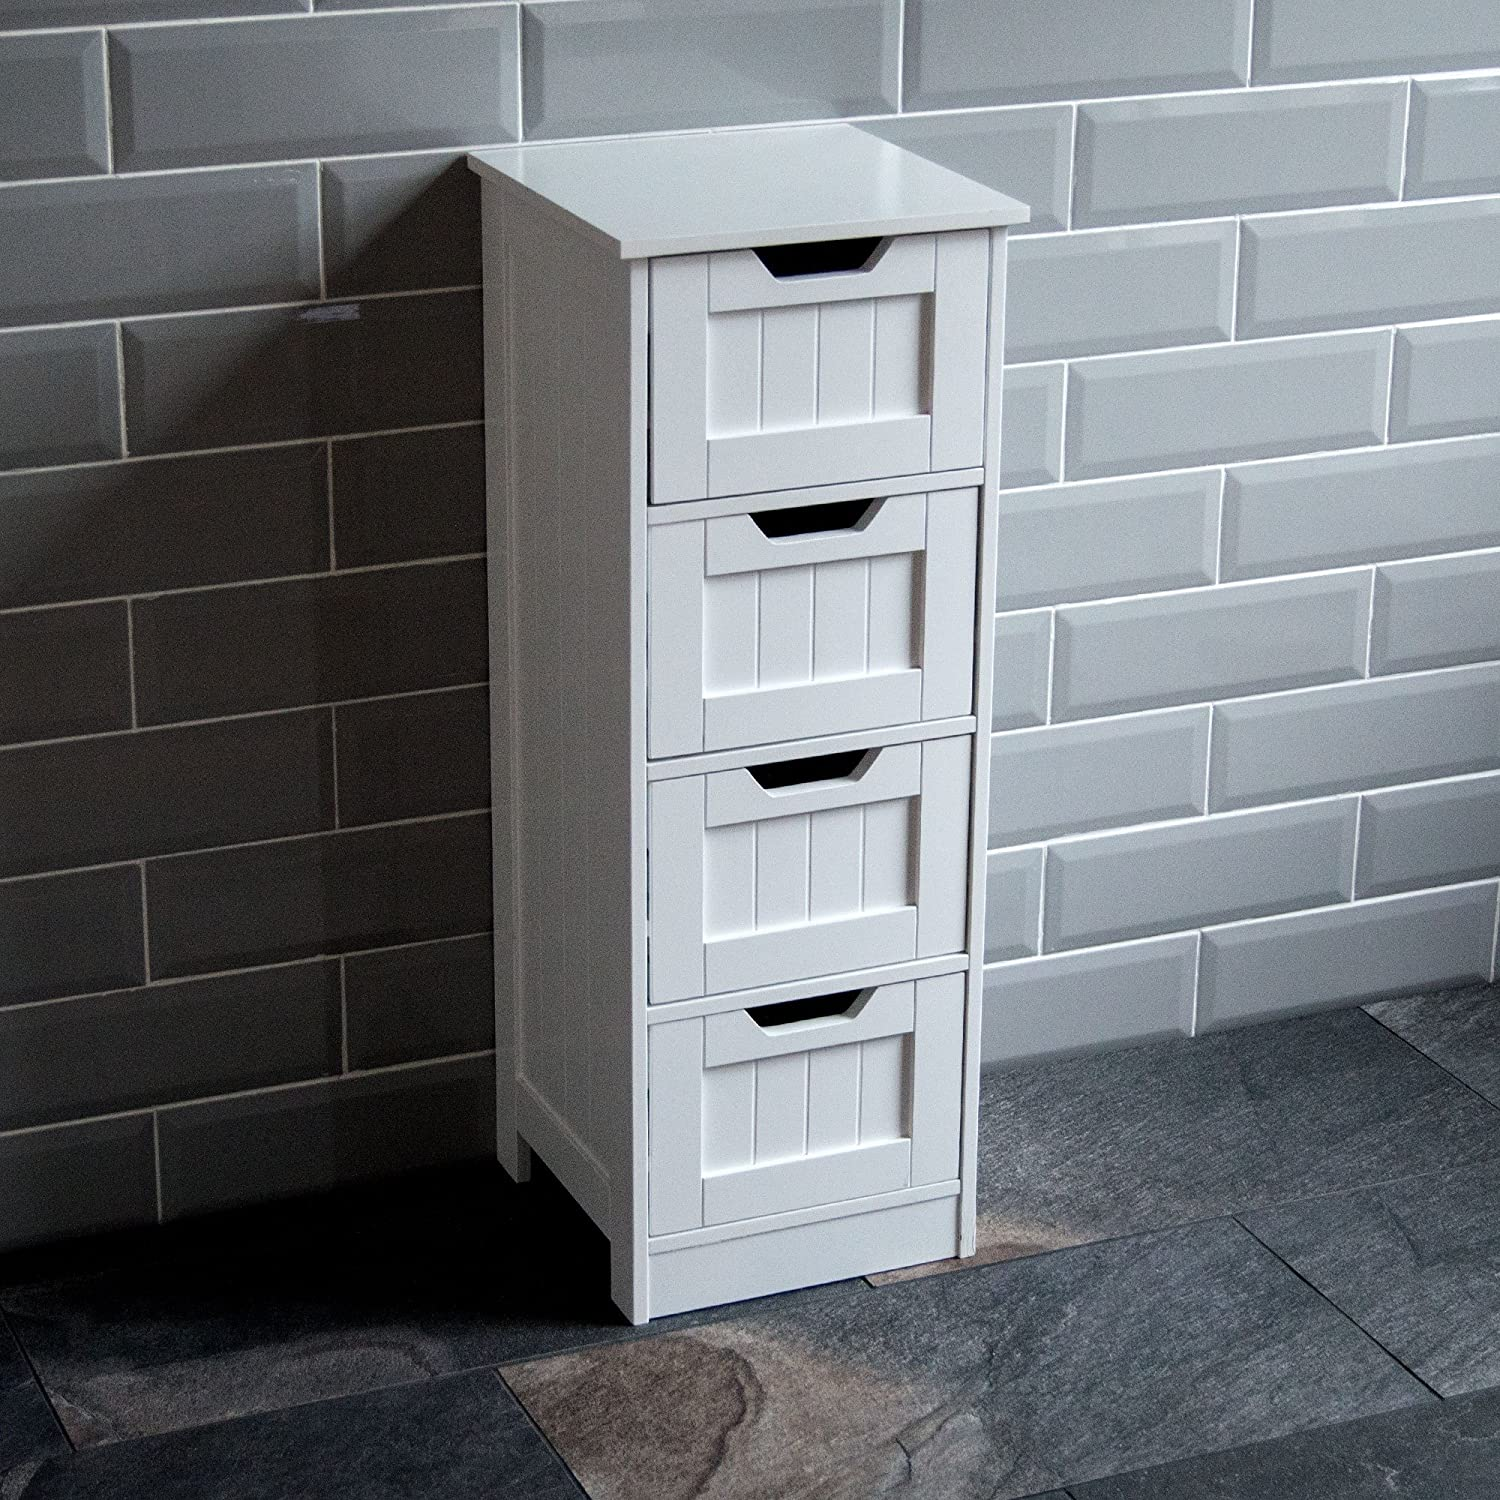 Enjoyable Bath Vida Bathroom 4 Drawer Floor Standing Cabinet Unit Storage Wood White Download Free Architecture Designs Itiscsunscenecom